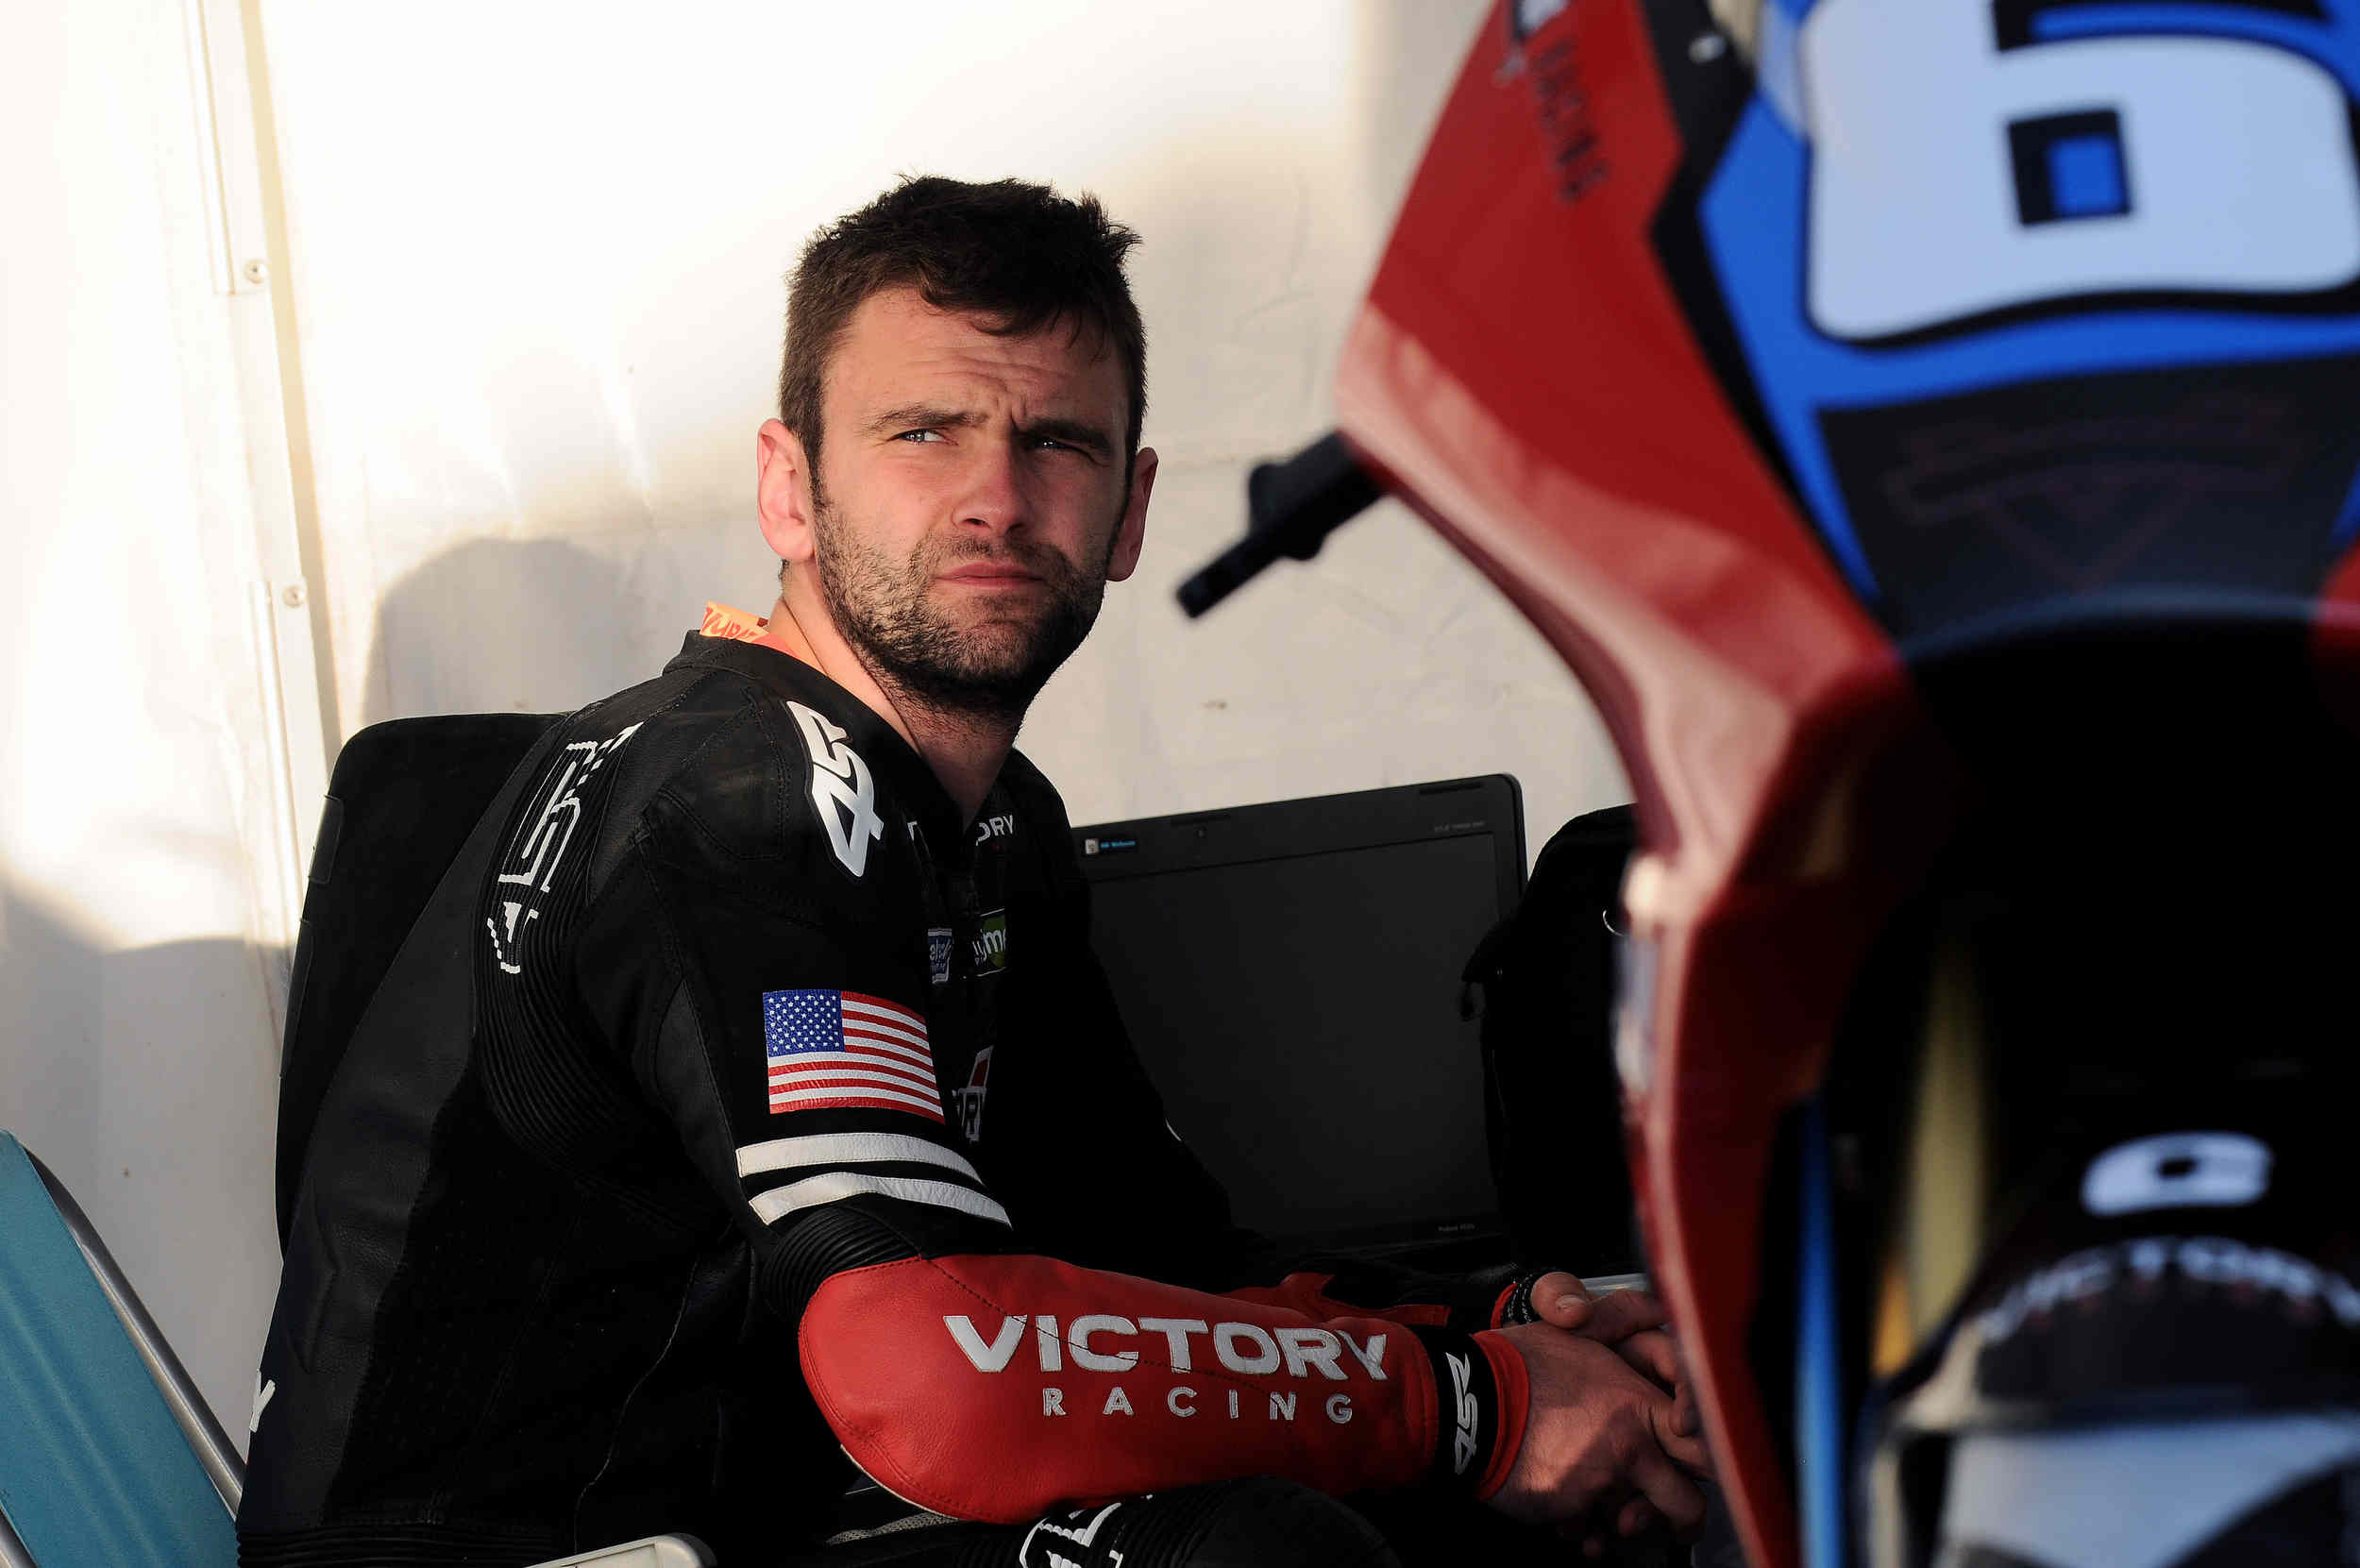 TT 2016 qualifying - William Dunlop